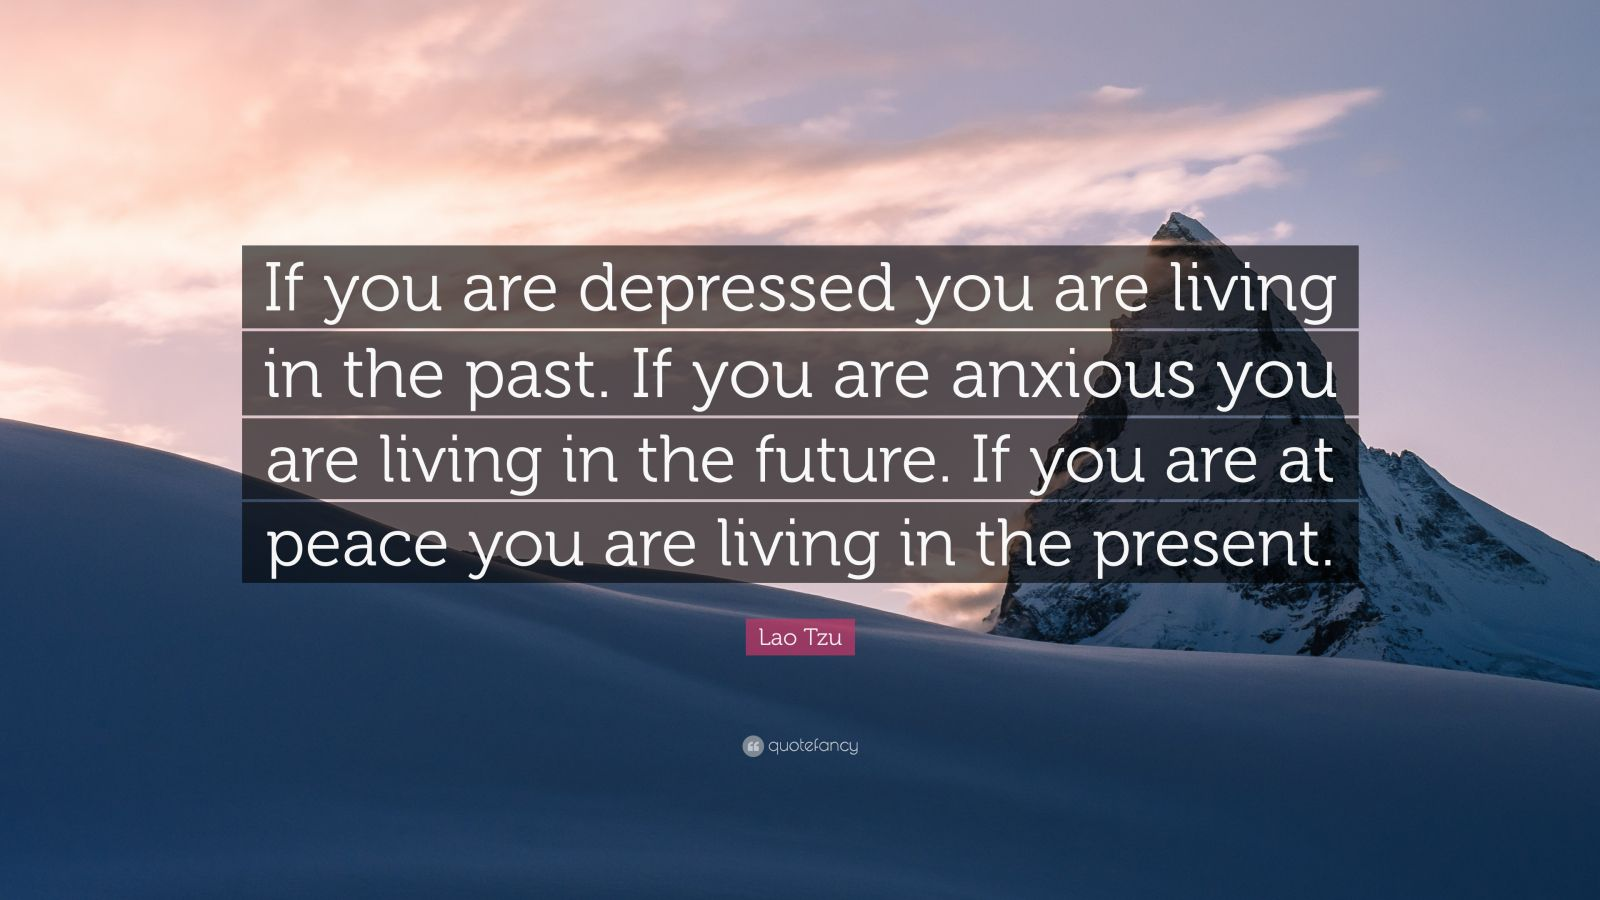 Are You If T Living Anxious Are You Are Future Depressed If Living You Are You